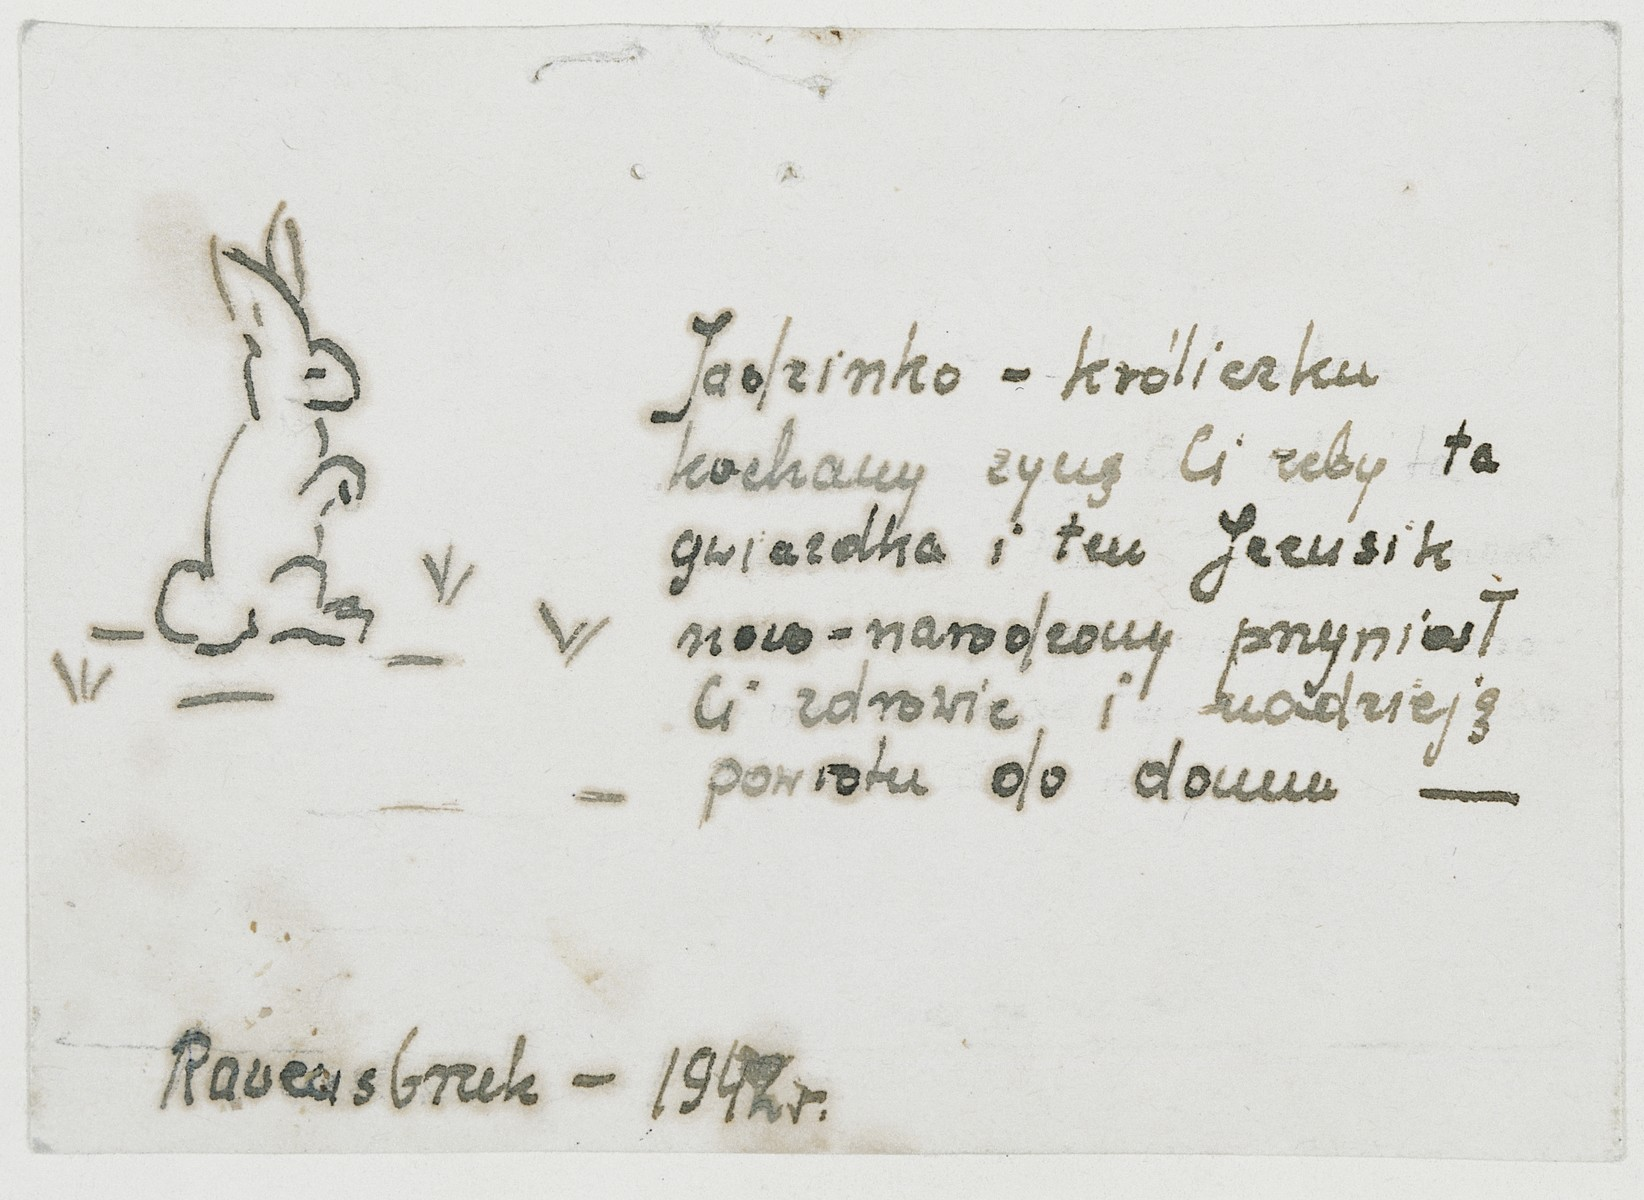 """Christmas card given to Polish political prisoner, Jadwiga Dzido by a fellow inmate of the Ravensbrueck concentration camp.  The card is decorated with a drawing of a rabbit, a reference to their common experience as victims of medical experimentation (like laboratory rabbits).  The Polish text reads: """"Dear Jadzienko Little Rabbit, For Christmas I wish that baby Jesus will grant you health and hope and that you will get back home."""""""